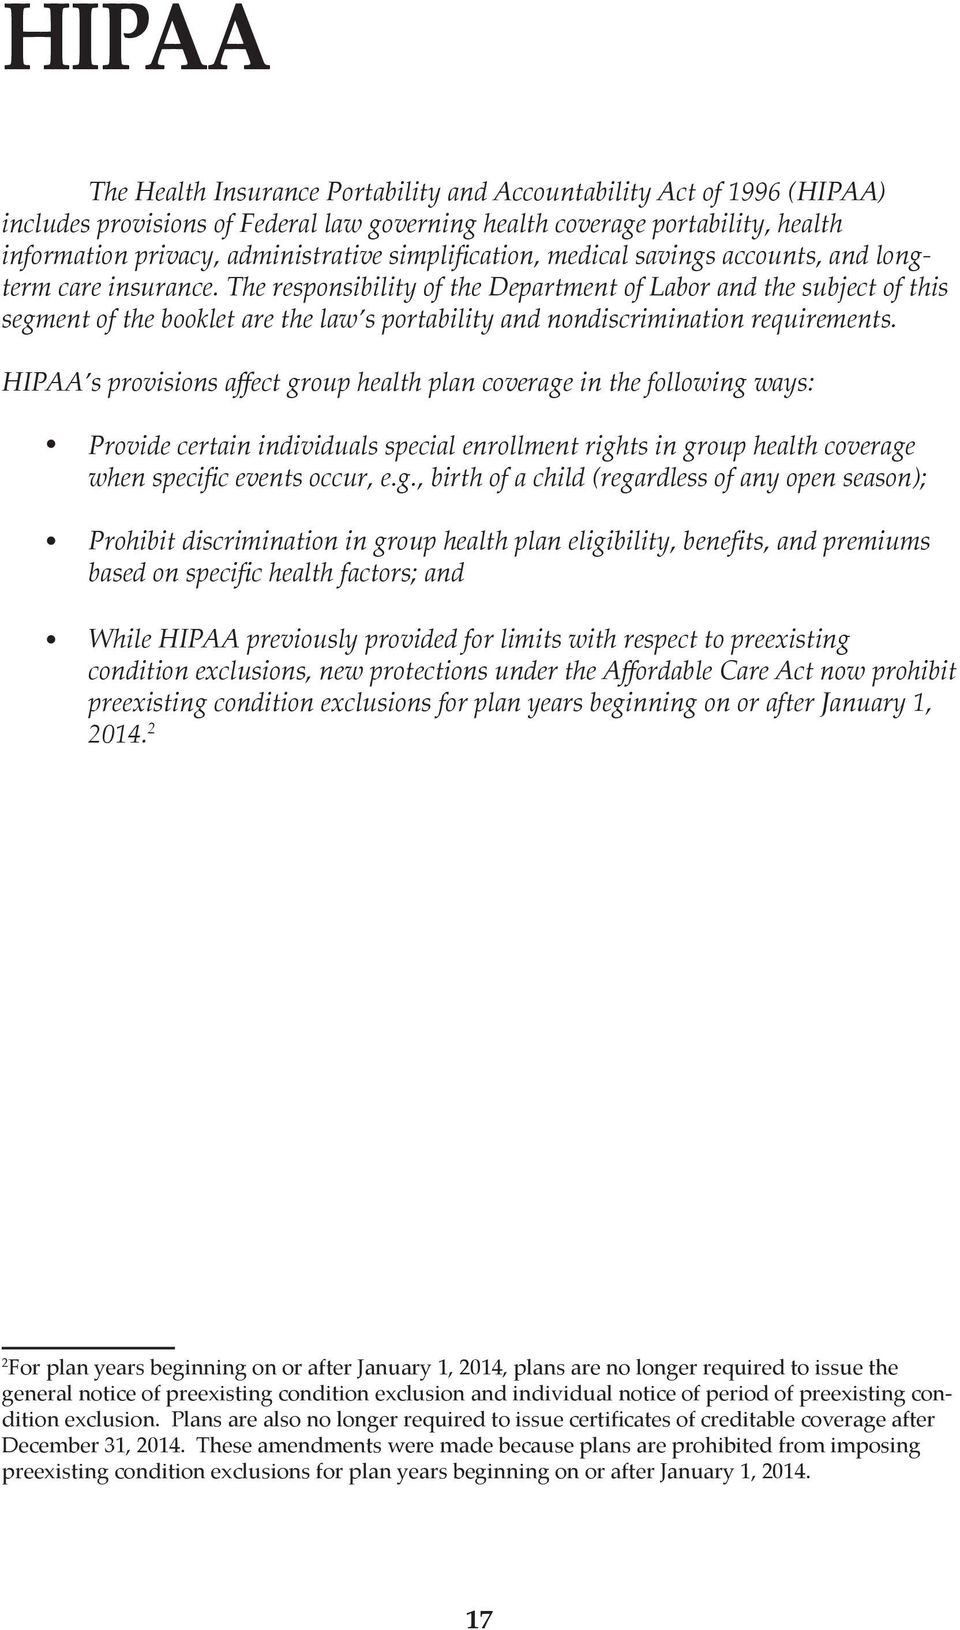 Hipaa Hipaa S Provisions Affect Group Health Plan Coverage In The